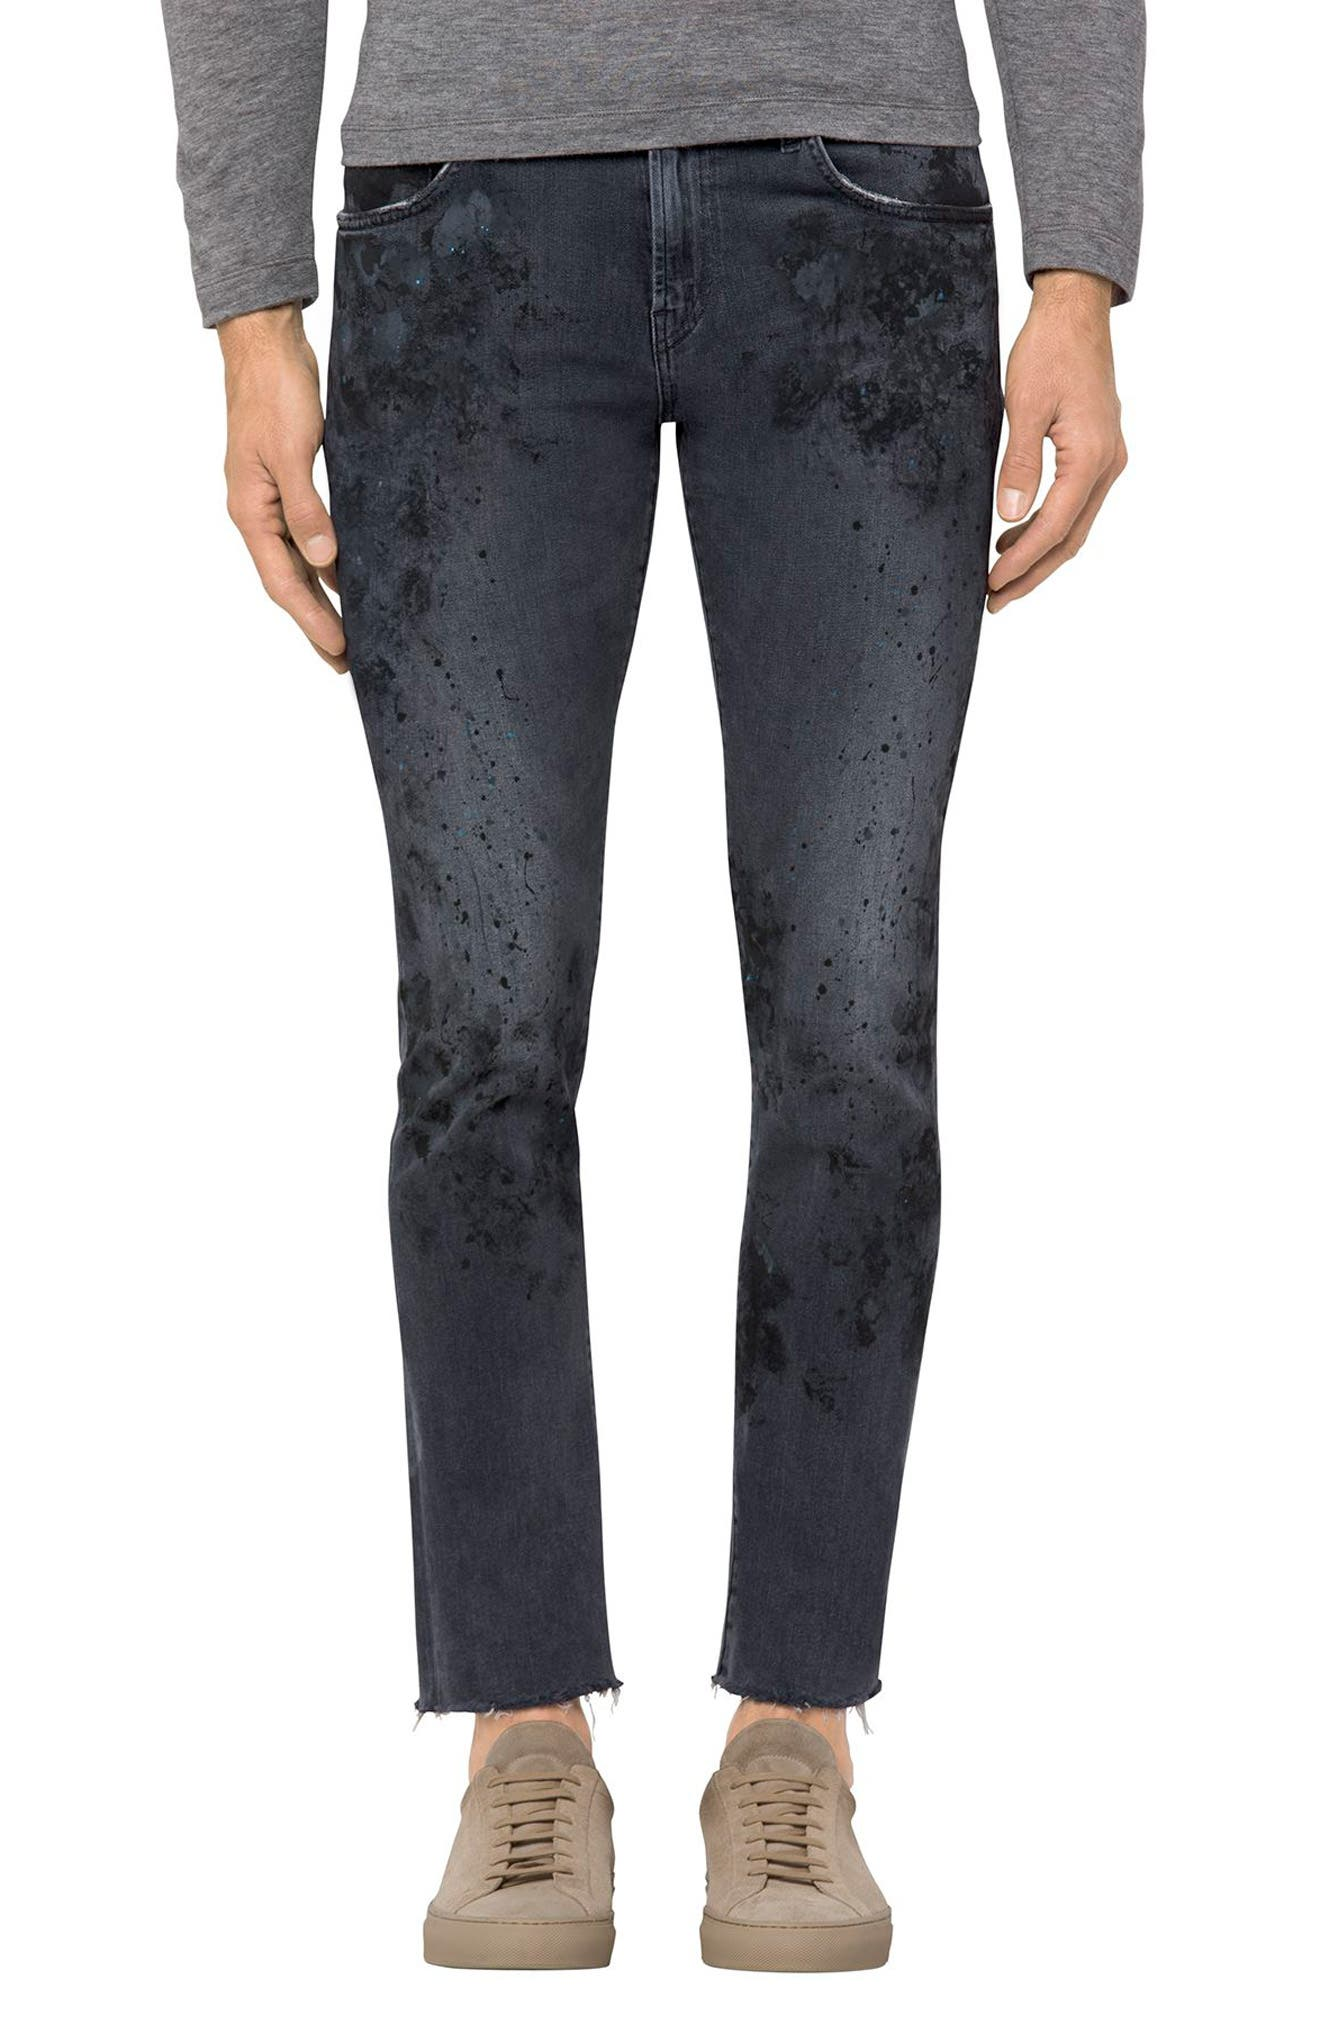 Mick Skinny Fit Jeans,                         Main,                         color, Vitreous